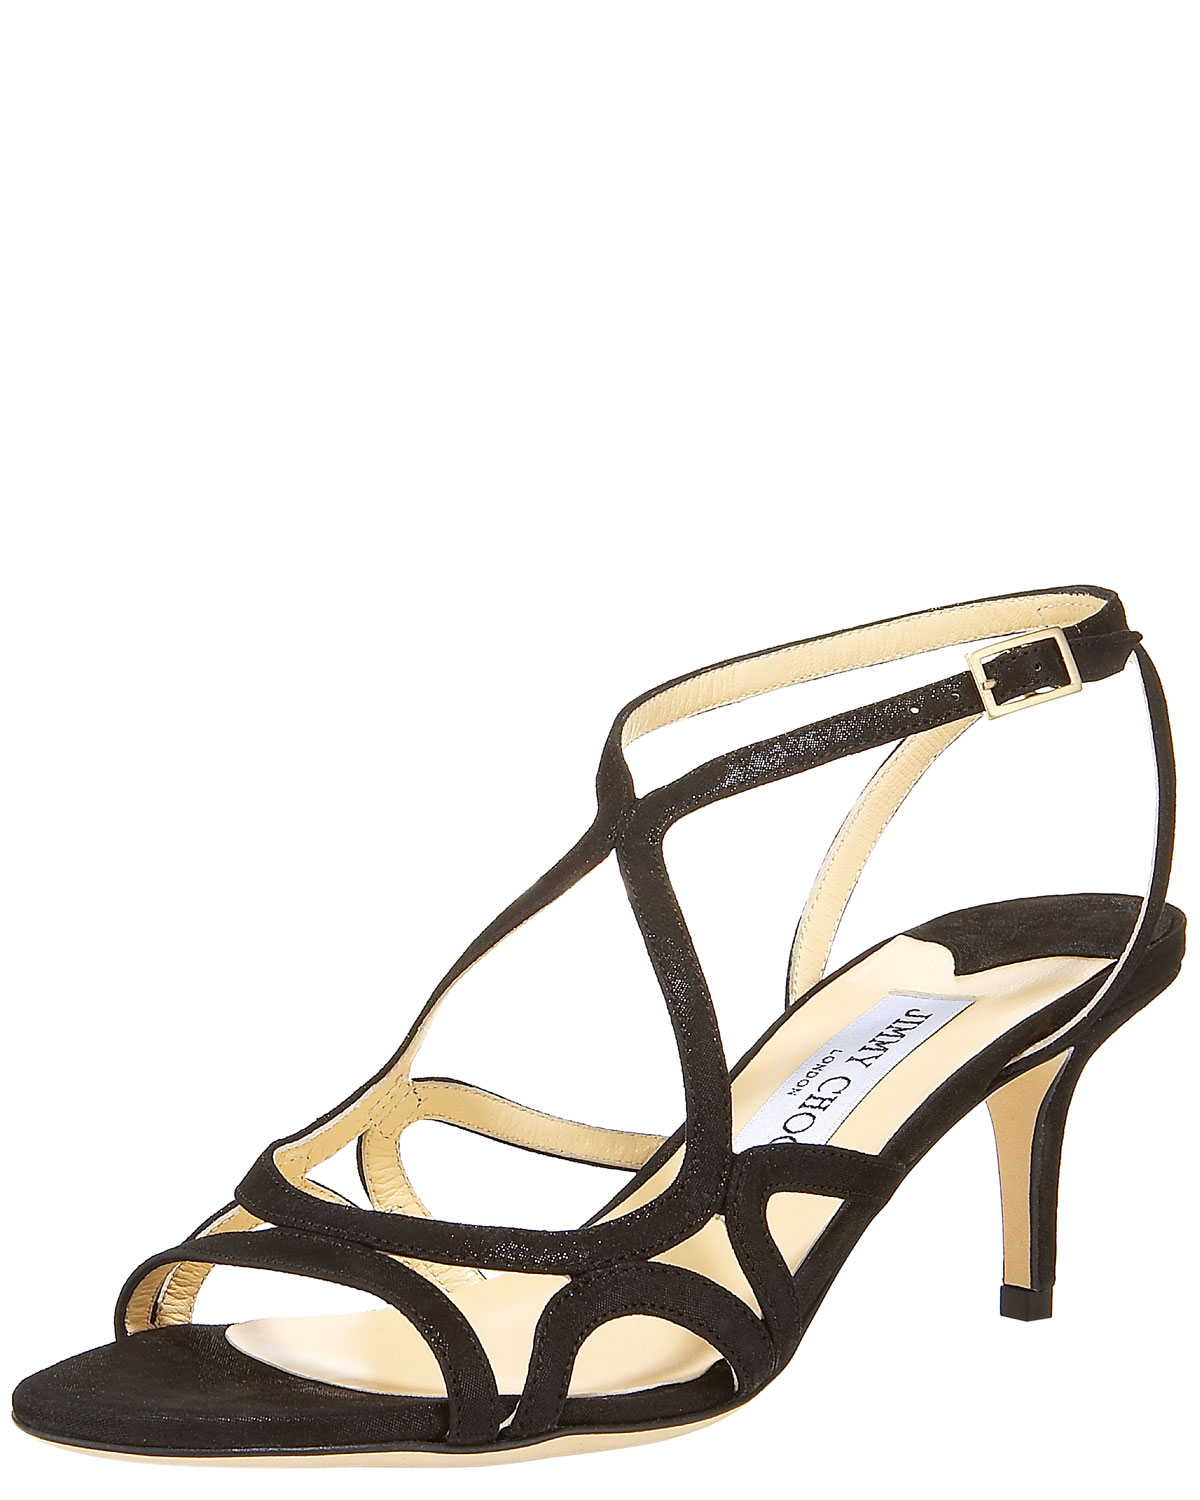 Jimmy choo Glittered Strappy Mid-Heel Sandal in Black  Lyst